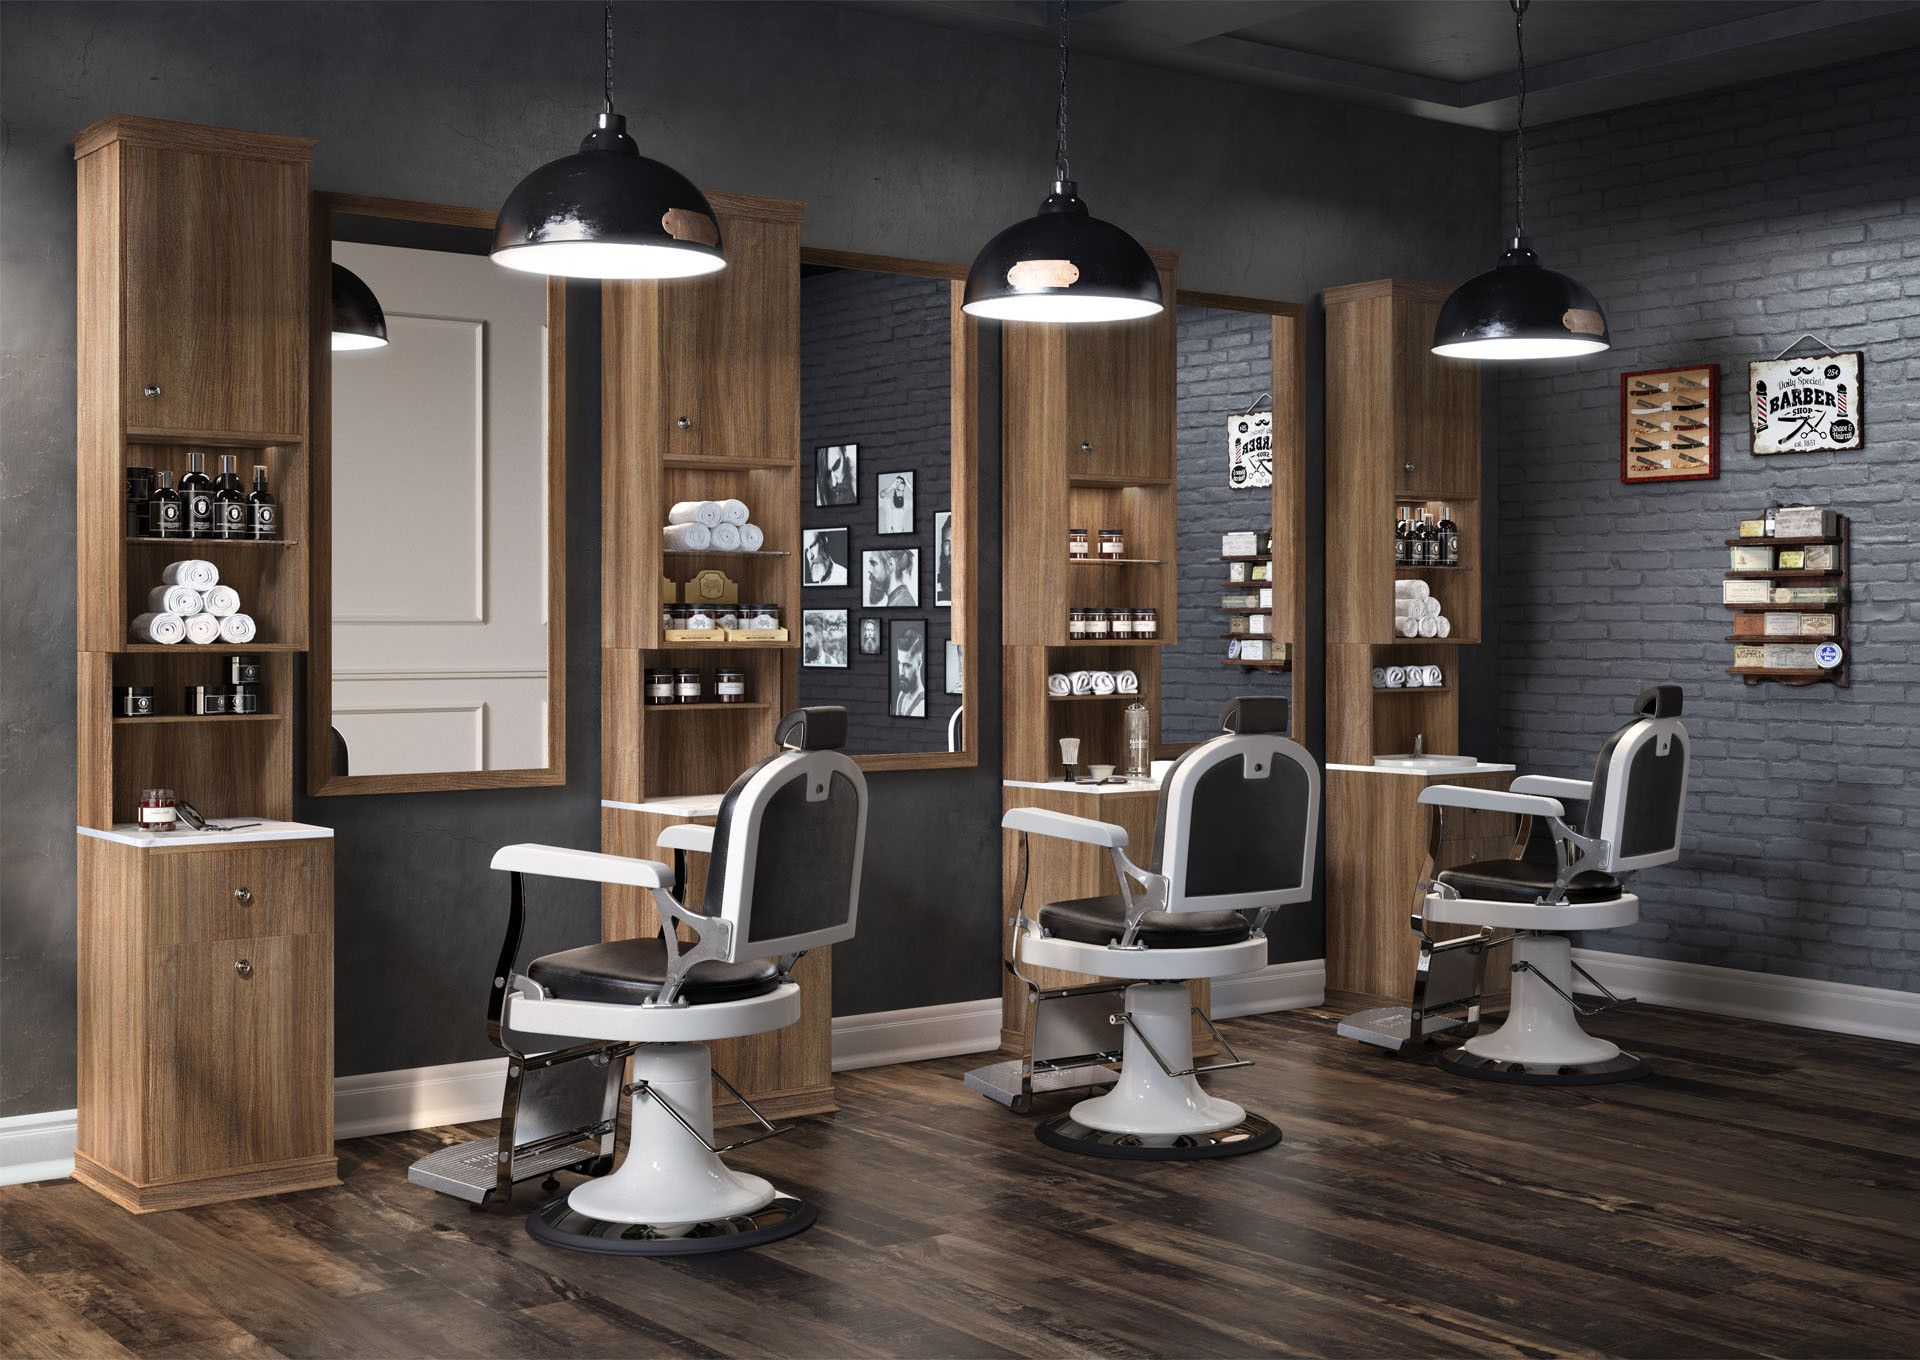 Salon De Coiffure Design